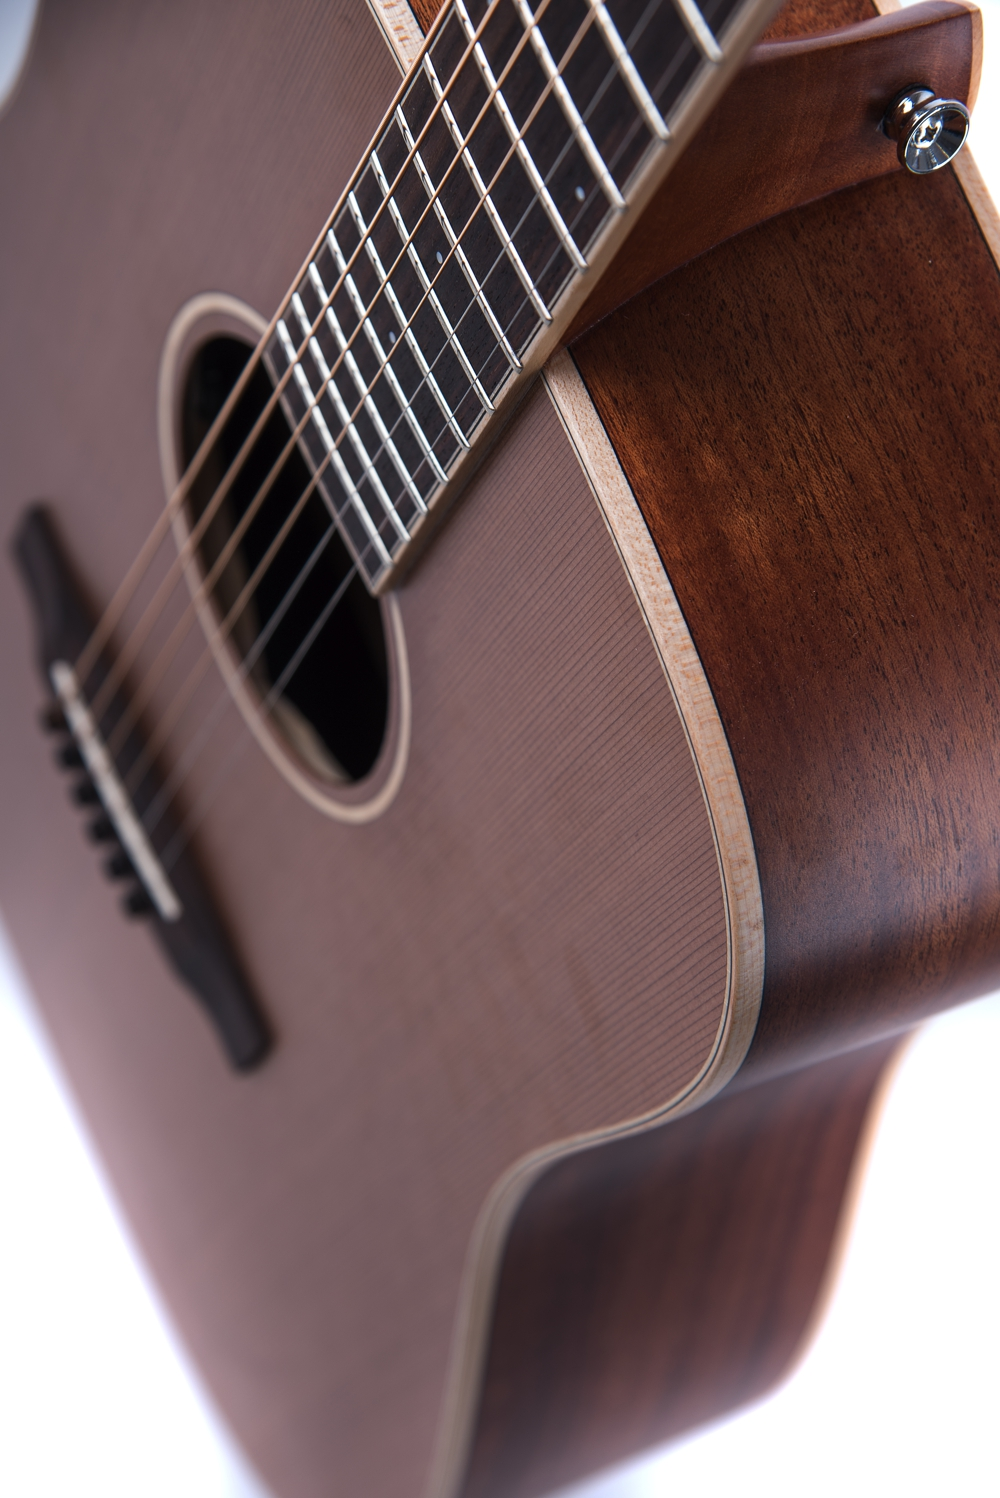 Colton Neo - acoustic guitar by Auden Guitars. Body image.